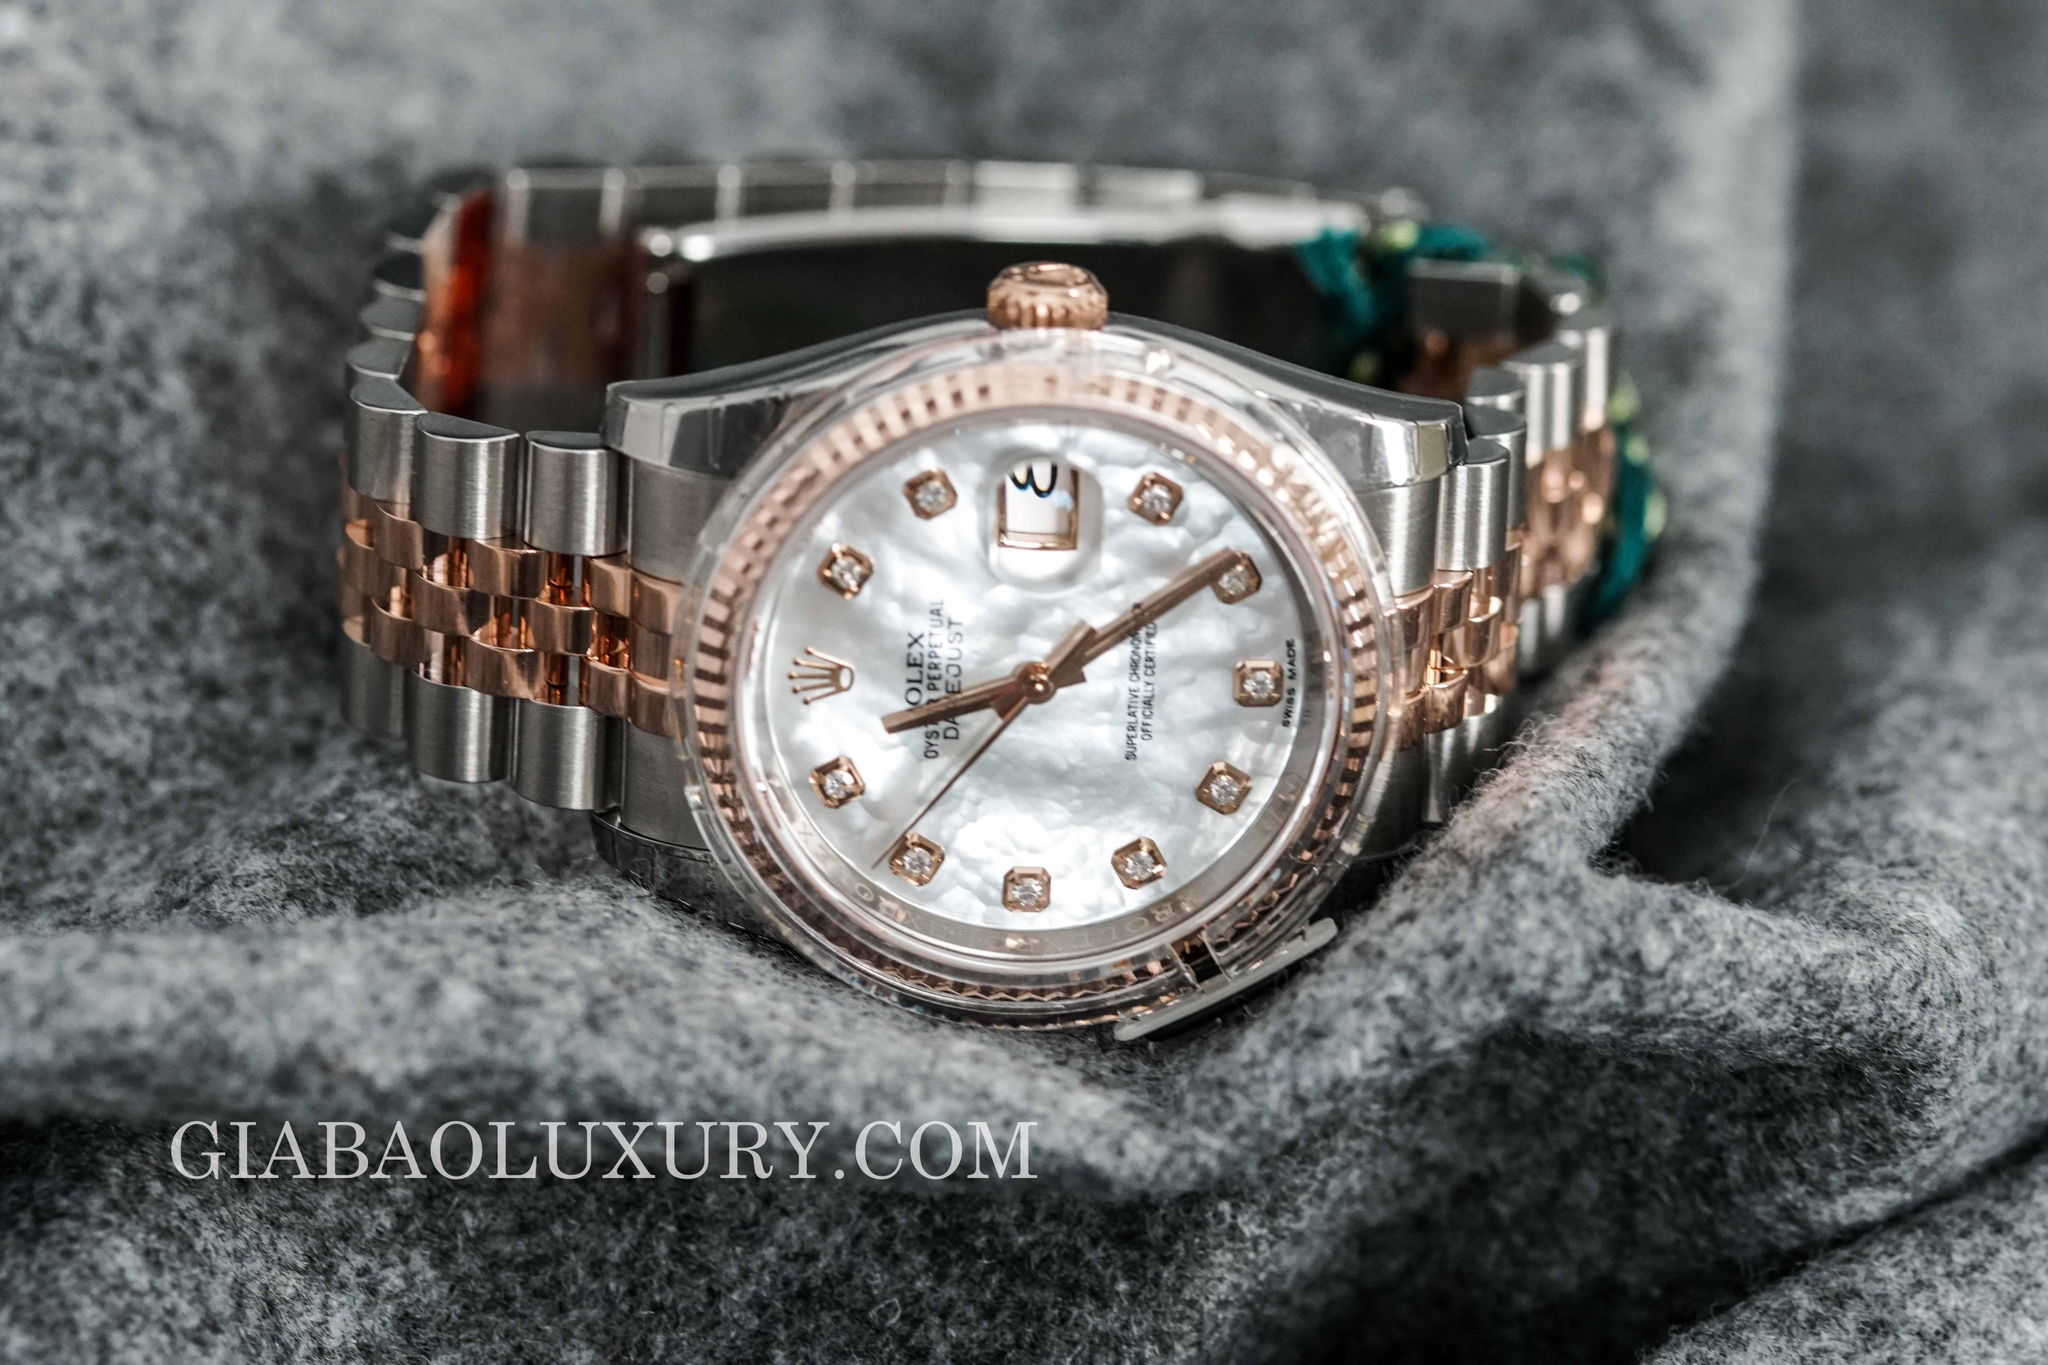 đồng hồ Rolex Oyster Perpetual Datejust 116231